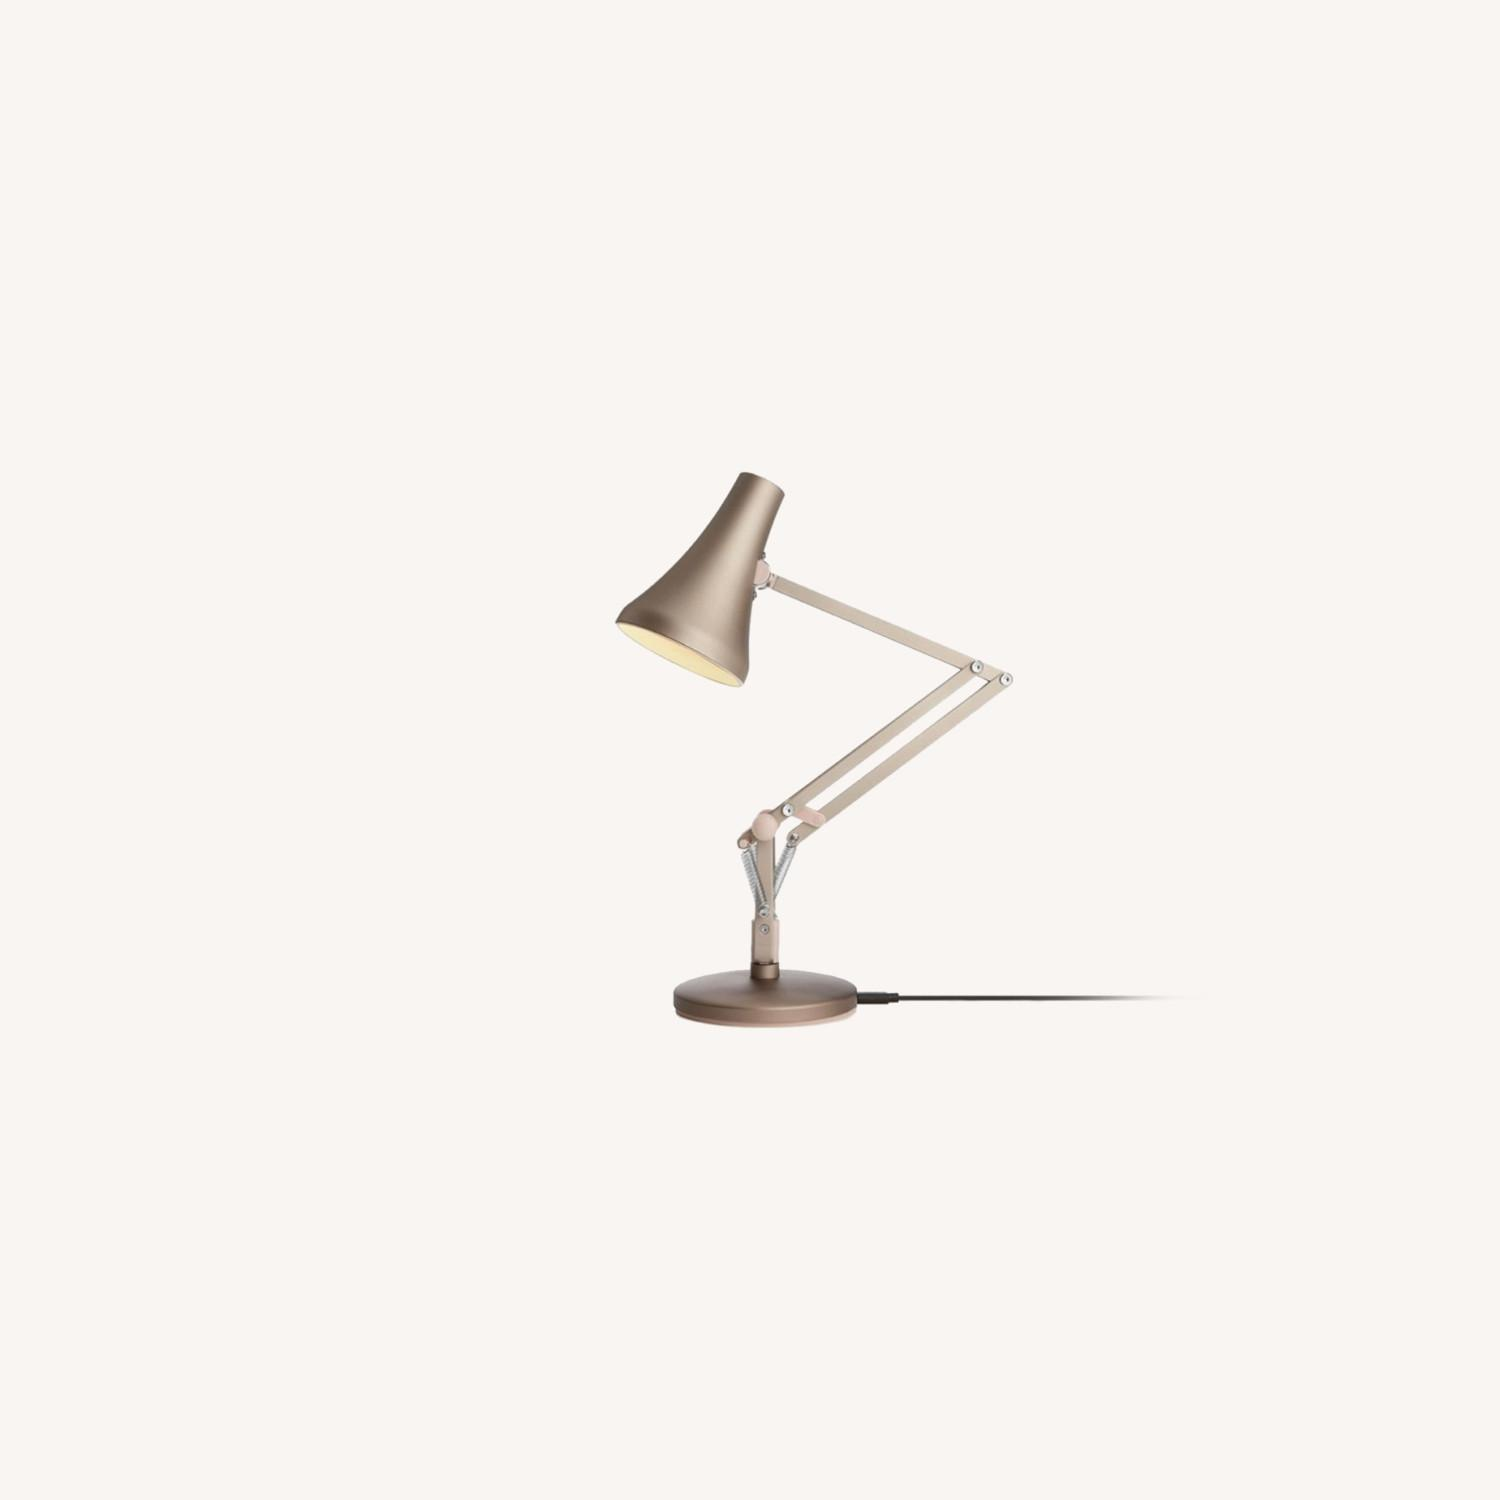 Anglepoise Simple Desk Lamps - image-0